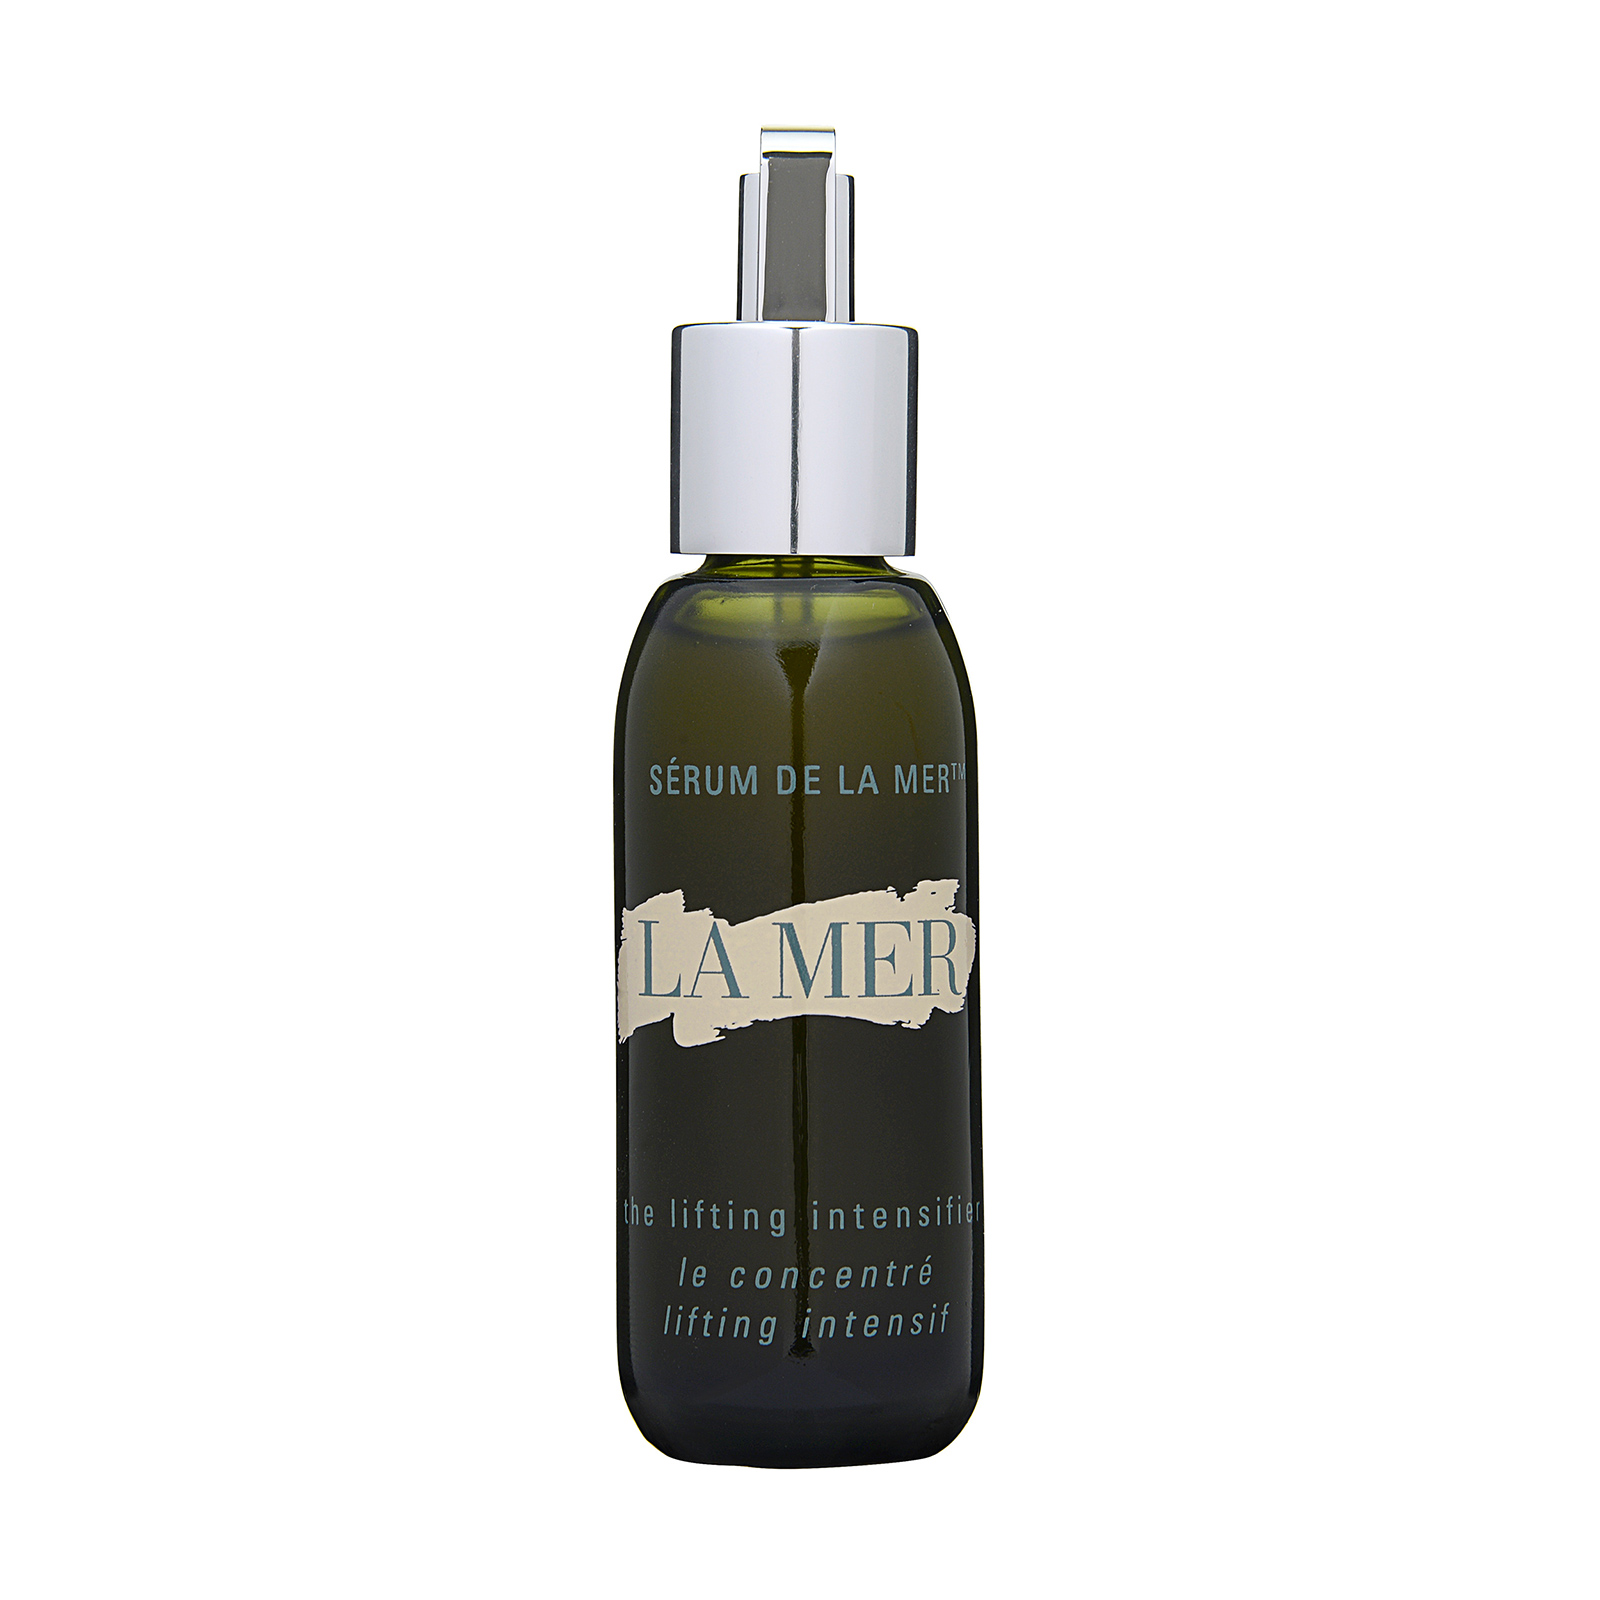 La Mer The Lifting Intensifier 0.5oz, 15ml